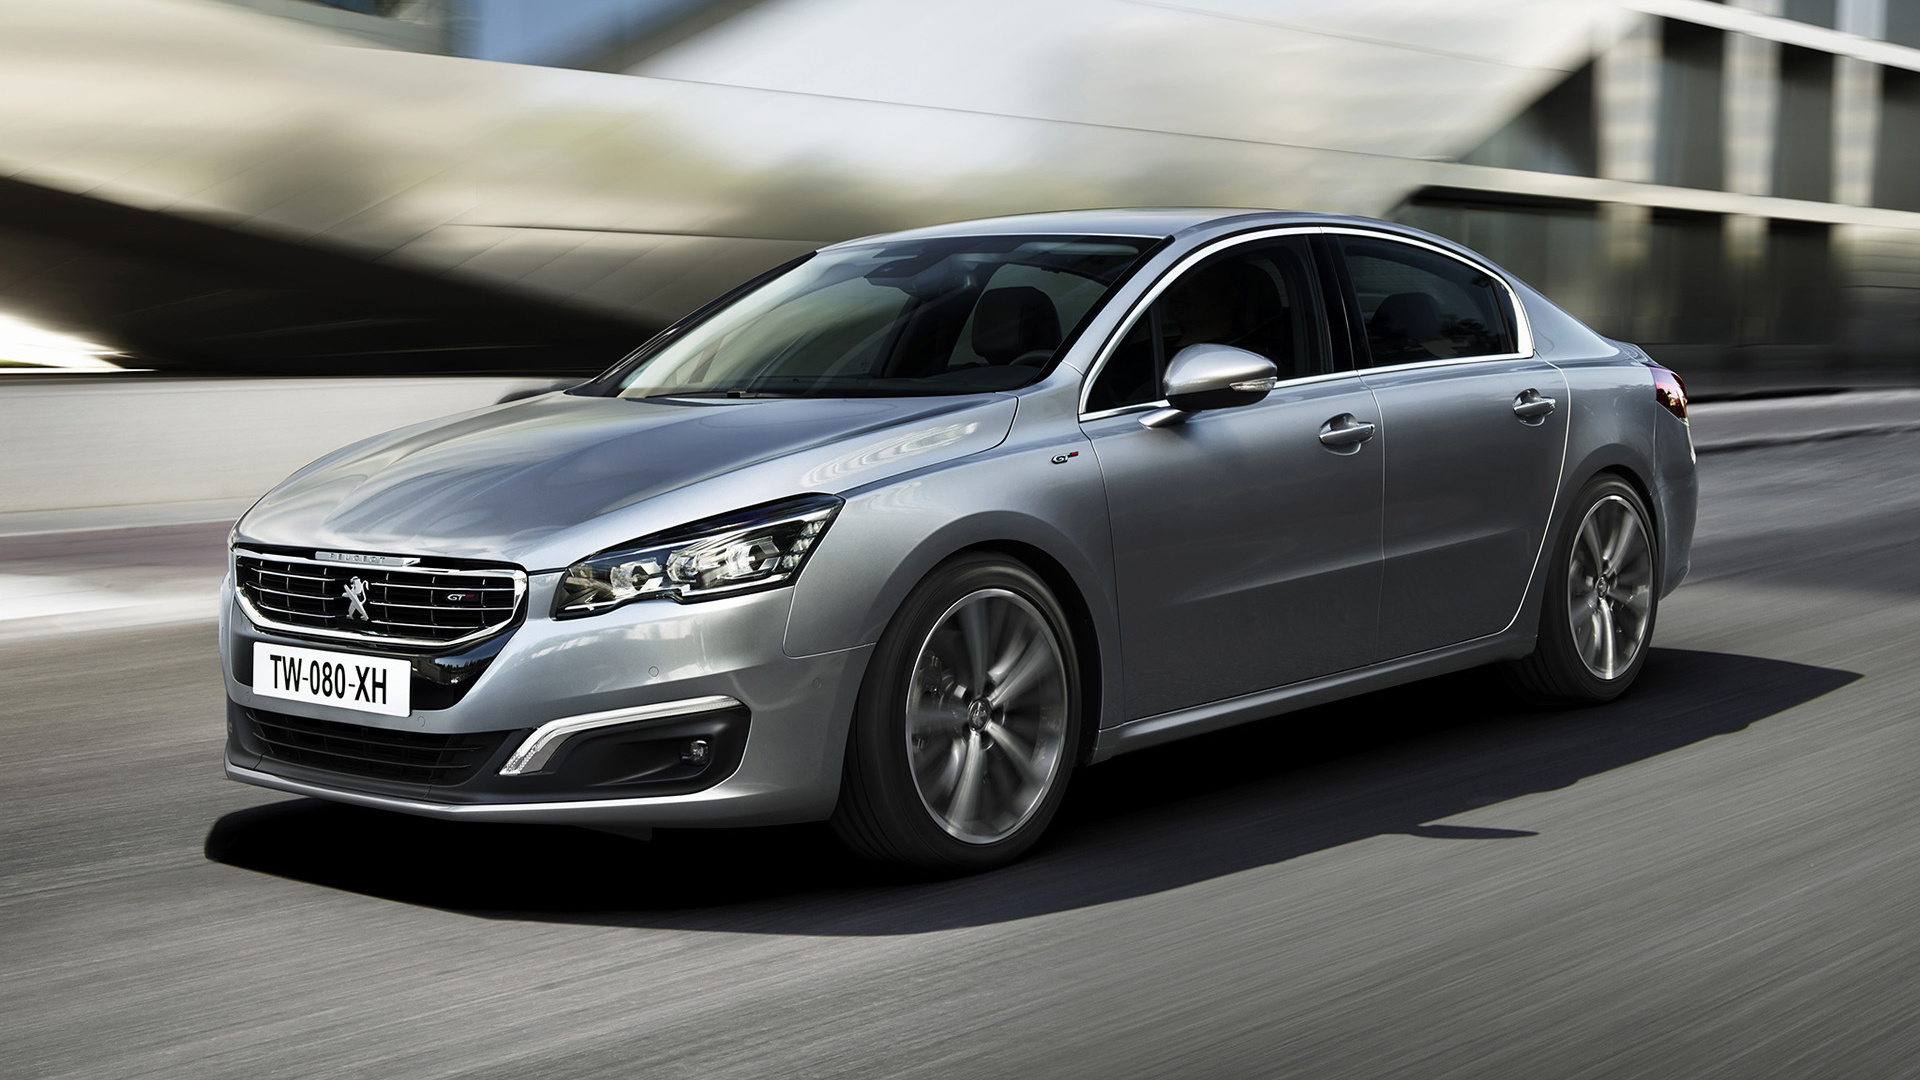 Peugeot 508 GT (2014) Wallpapers and HD Images - Car Pixel